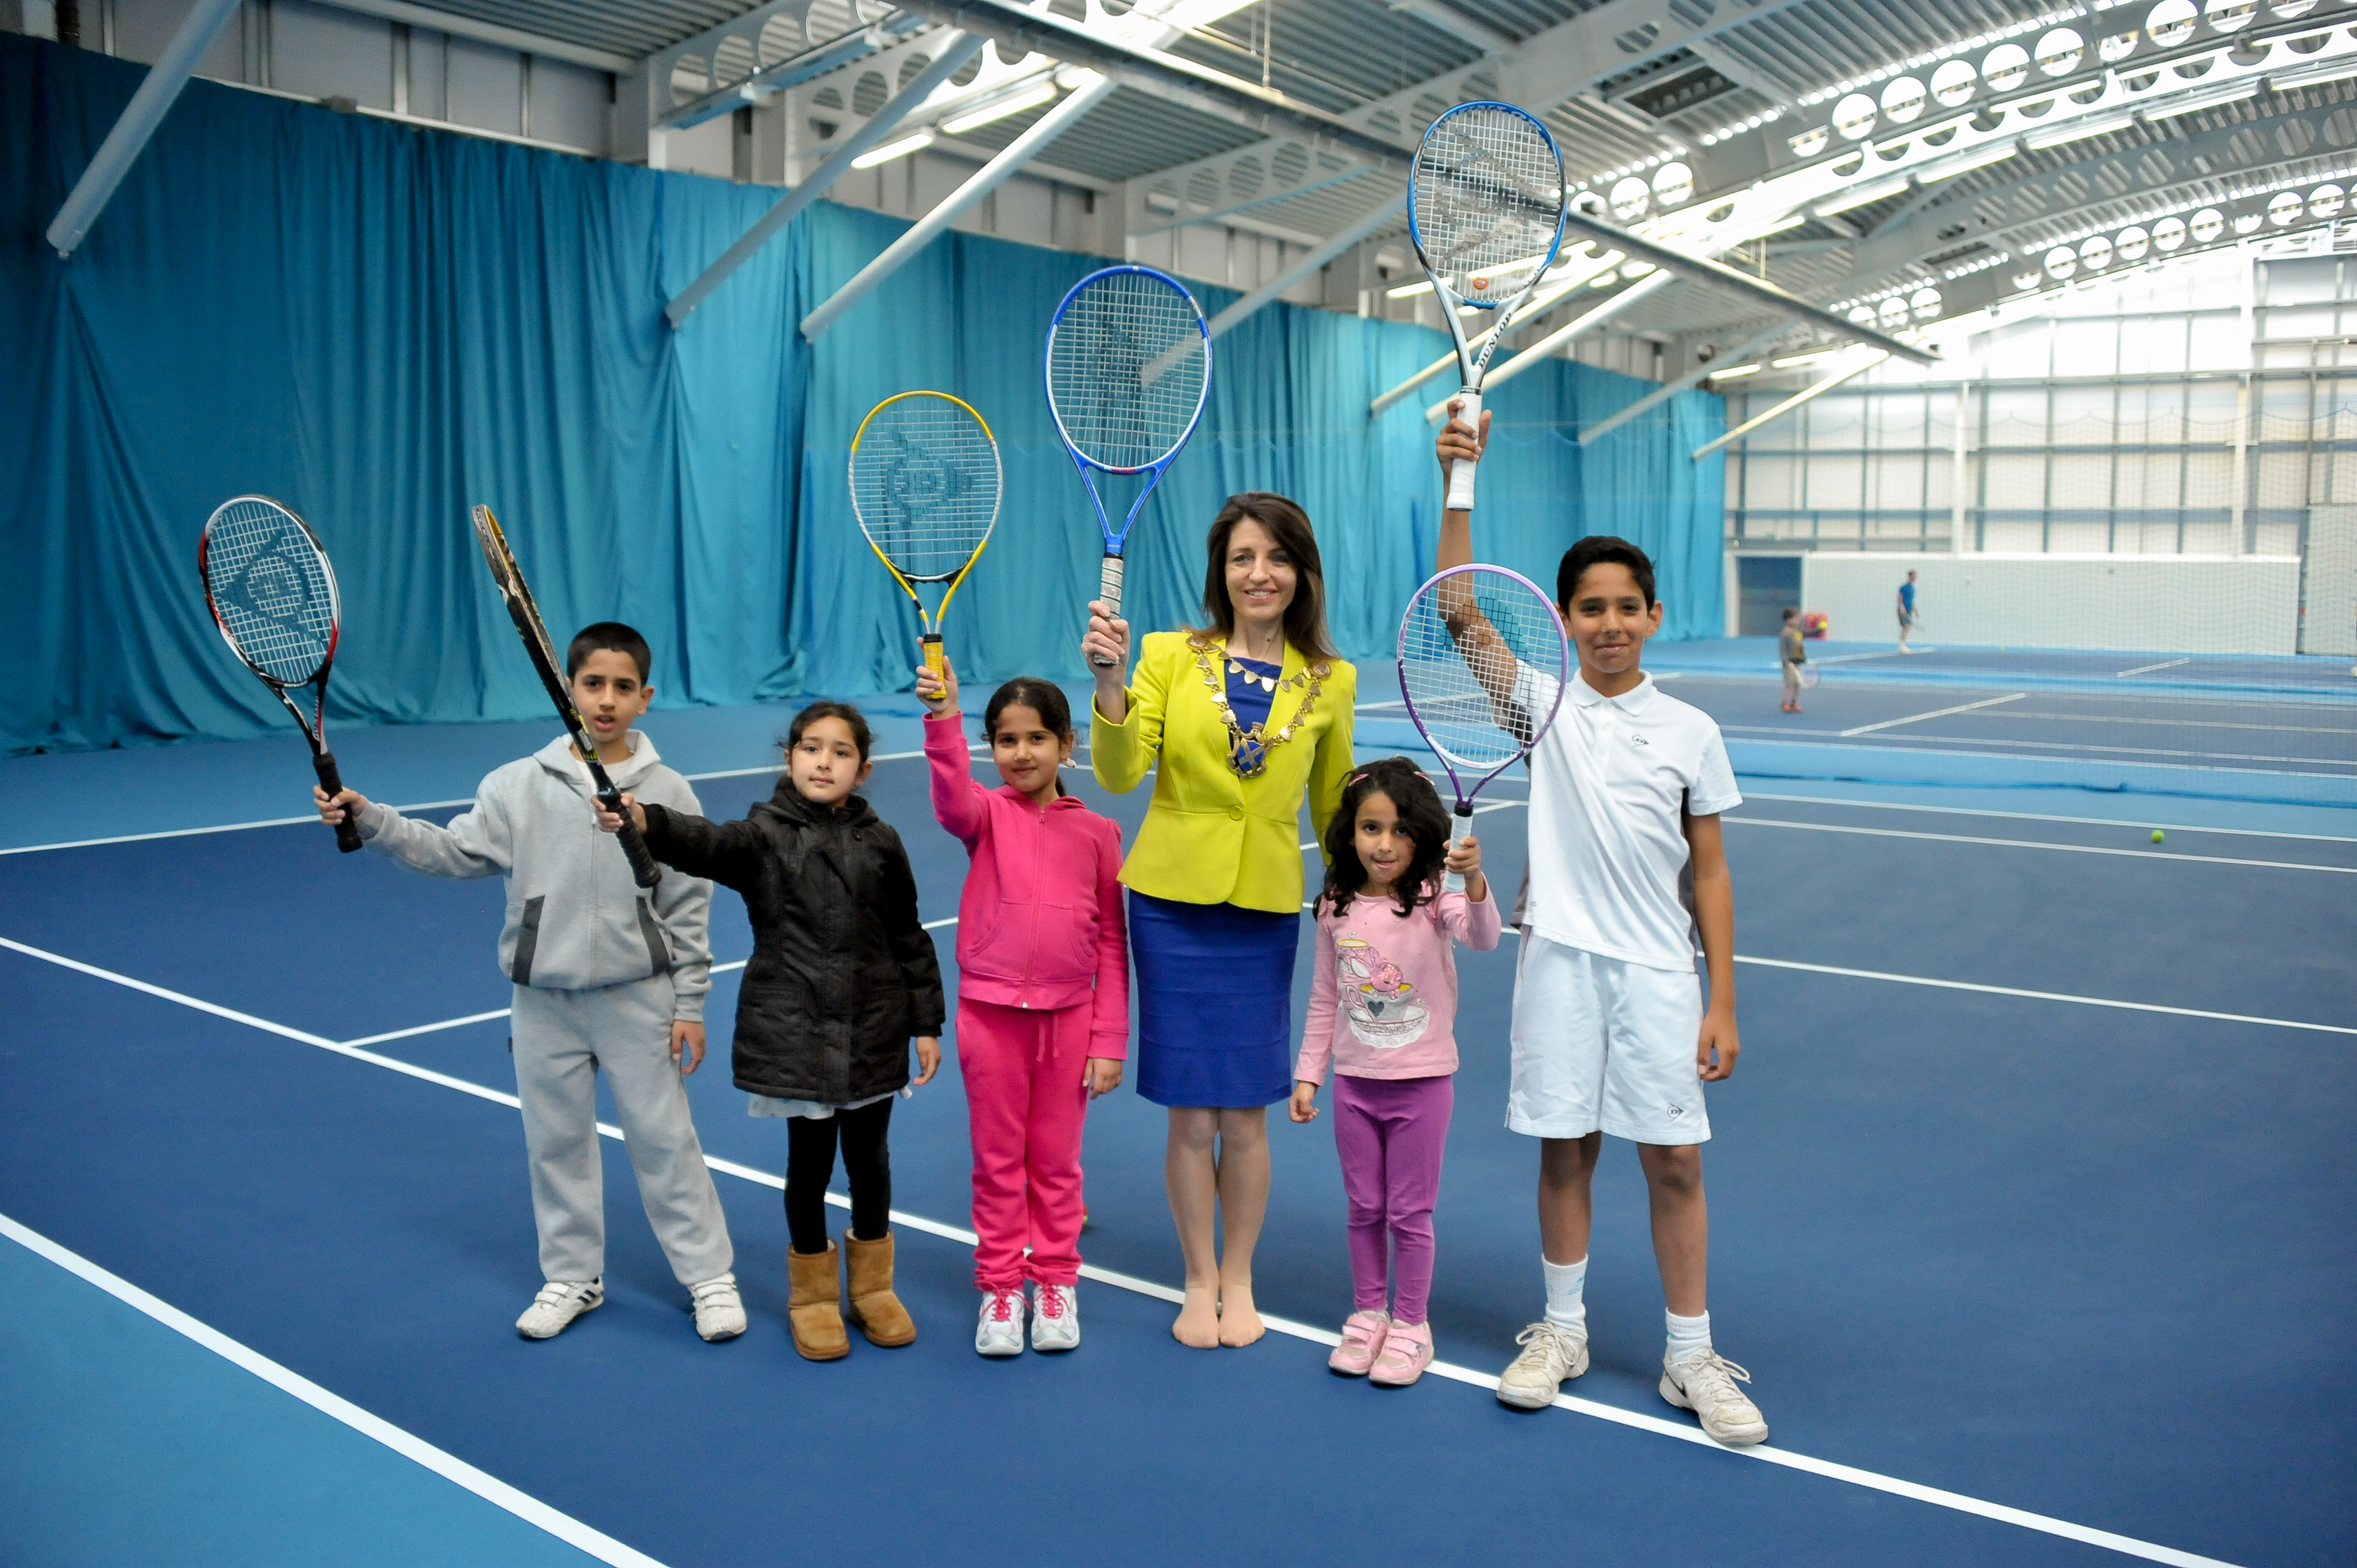 Batchwood Sports Centre houses six indoor tennis courts, three outdoor courts and two mini courts